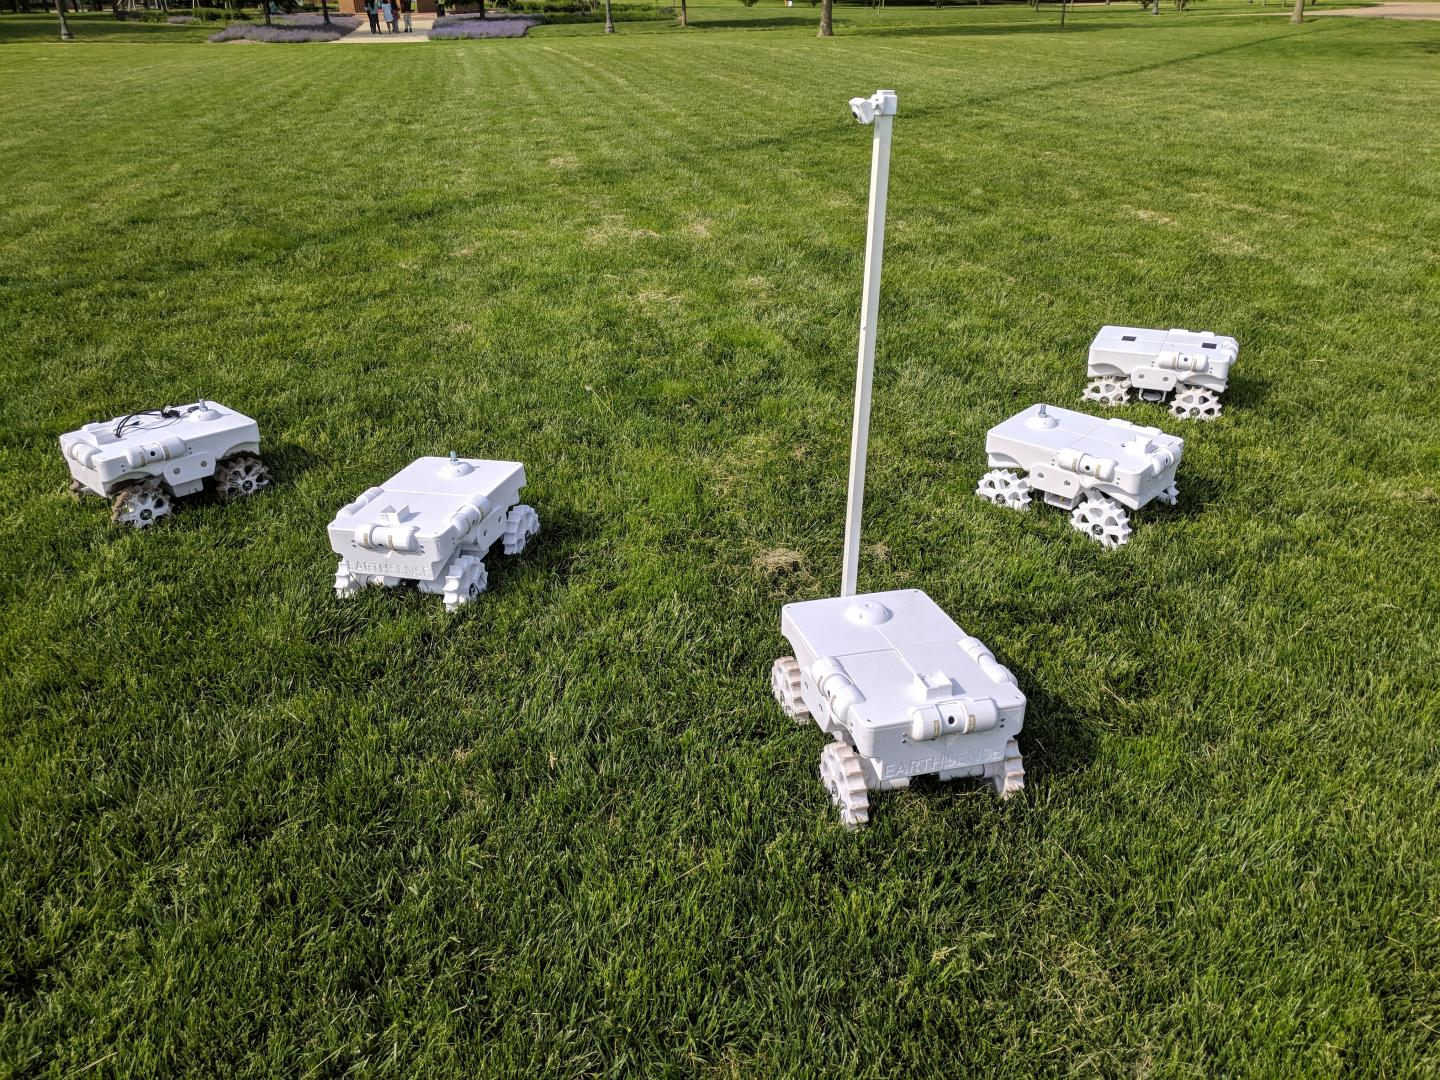 Developed by the University of Illinois, the TerraSentia robot that autonomously monitors crops earned the best systems paper award at Robotics: Science and Systems, the preeminent robotics conference held in Pittsburgh.